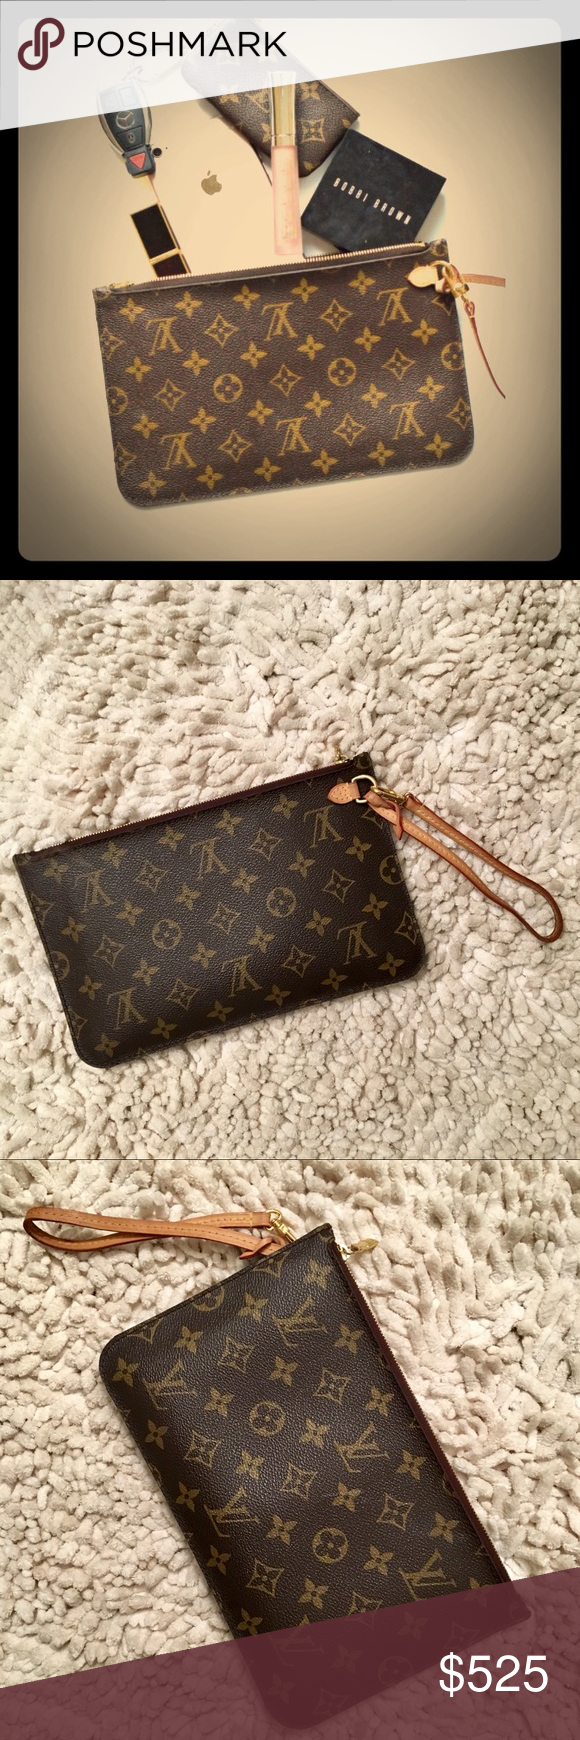 8cb66a2576e Authentic Neverfull GM Monogram Pochette Clutch After 2014